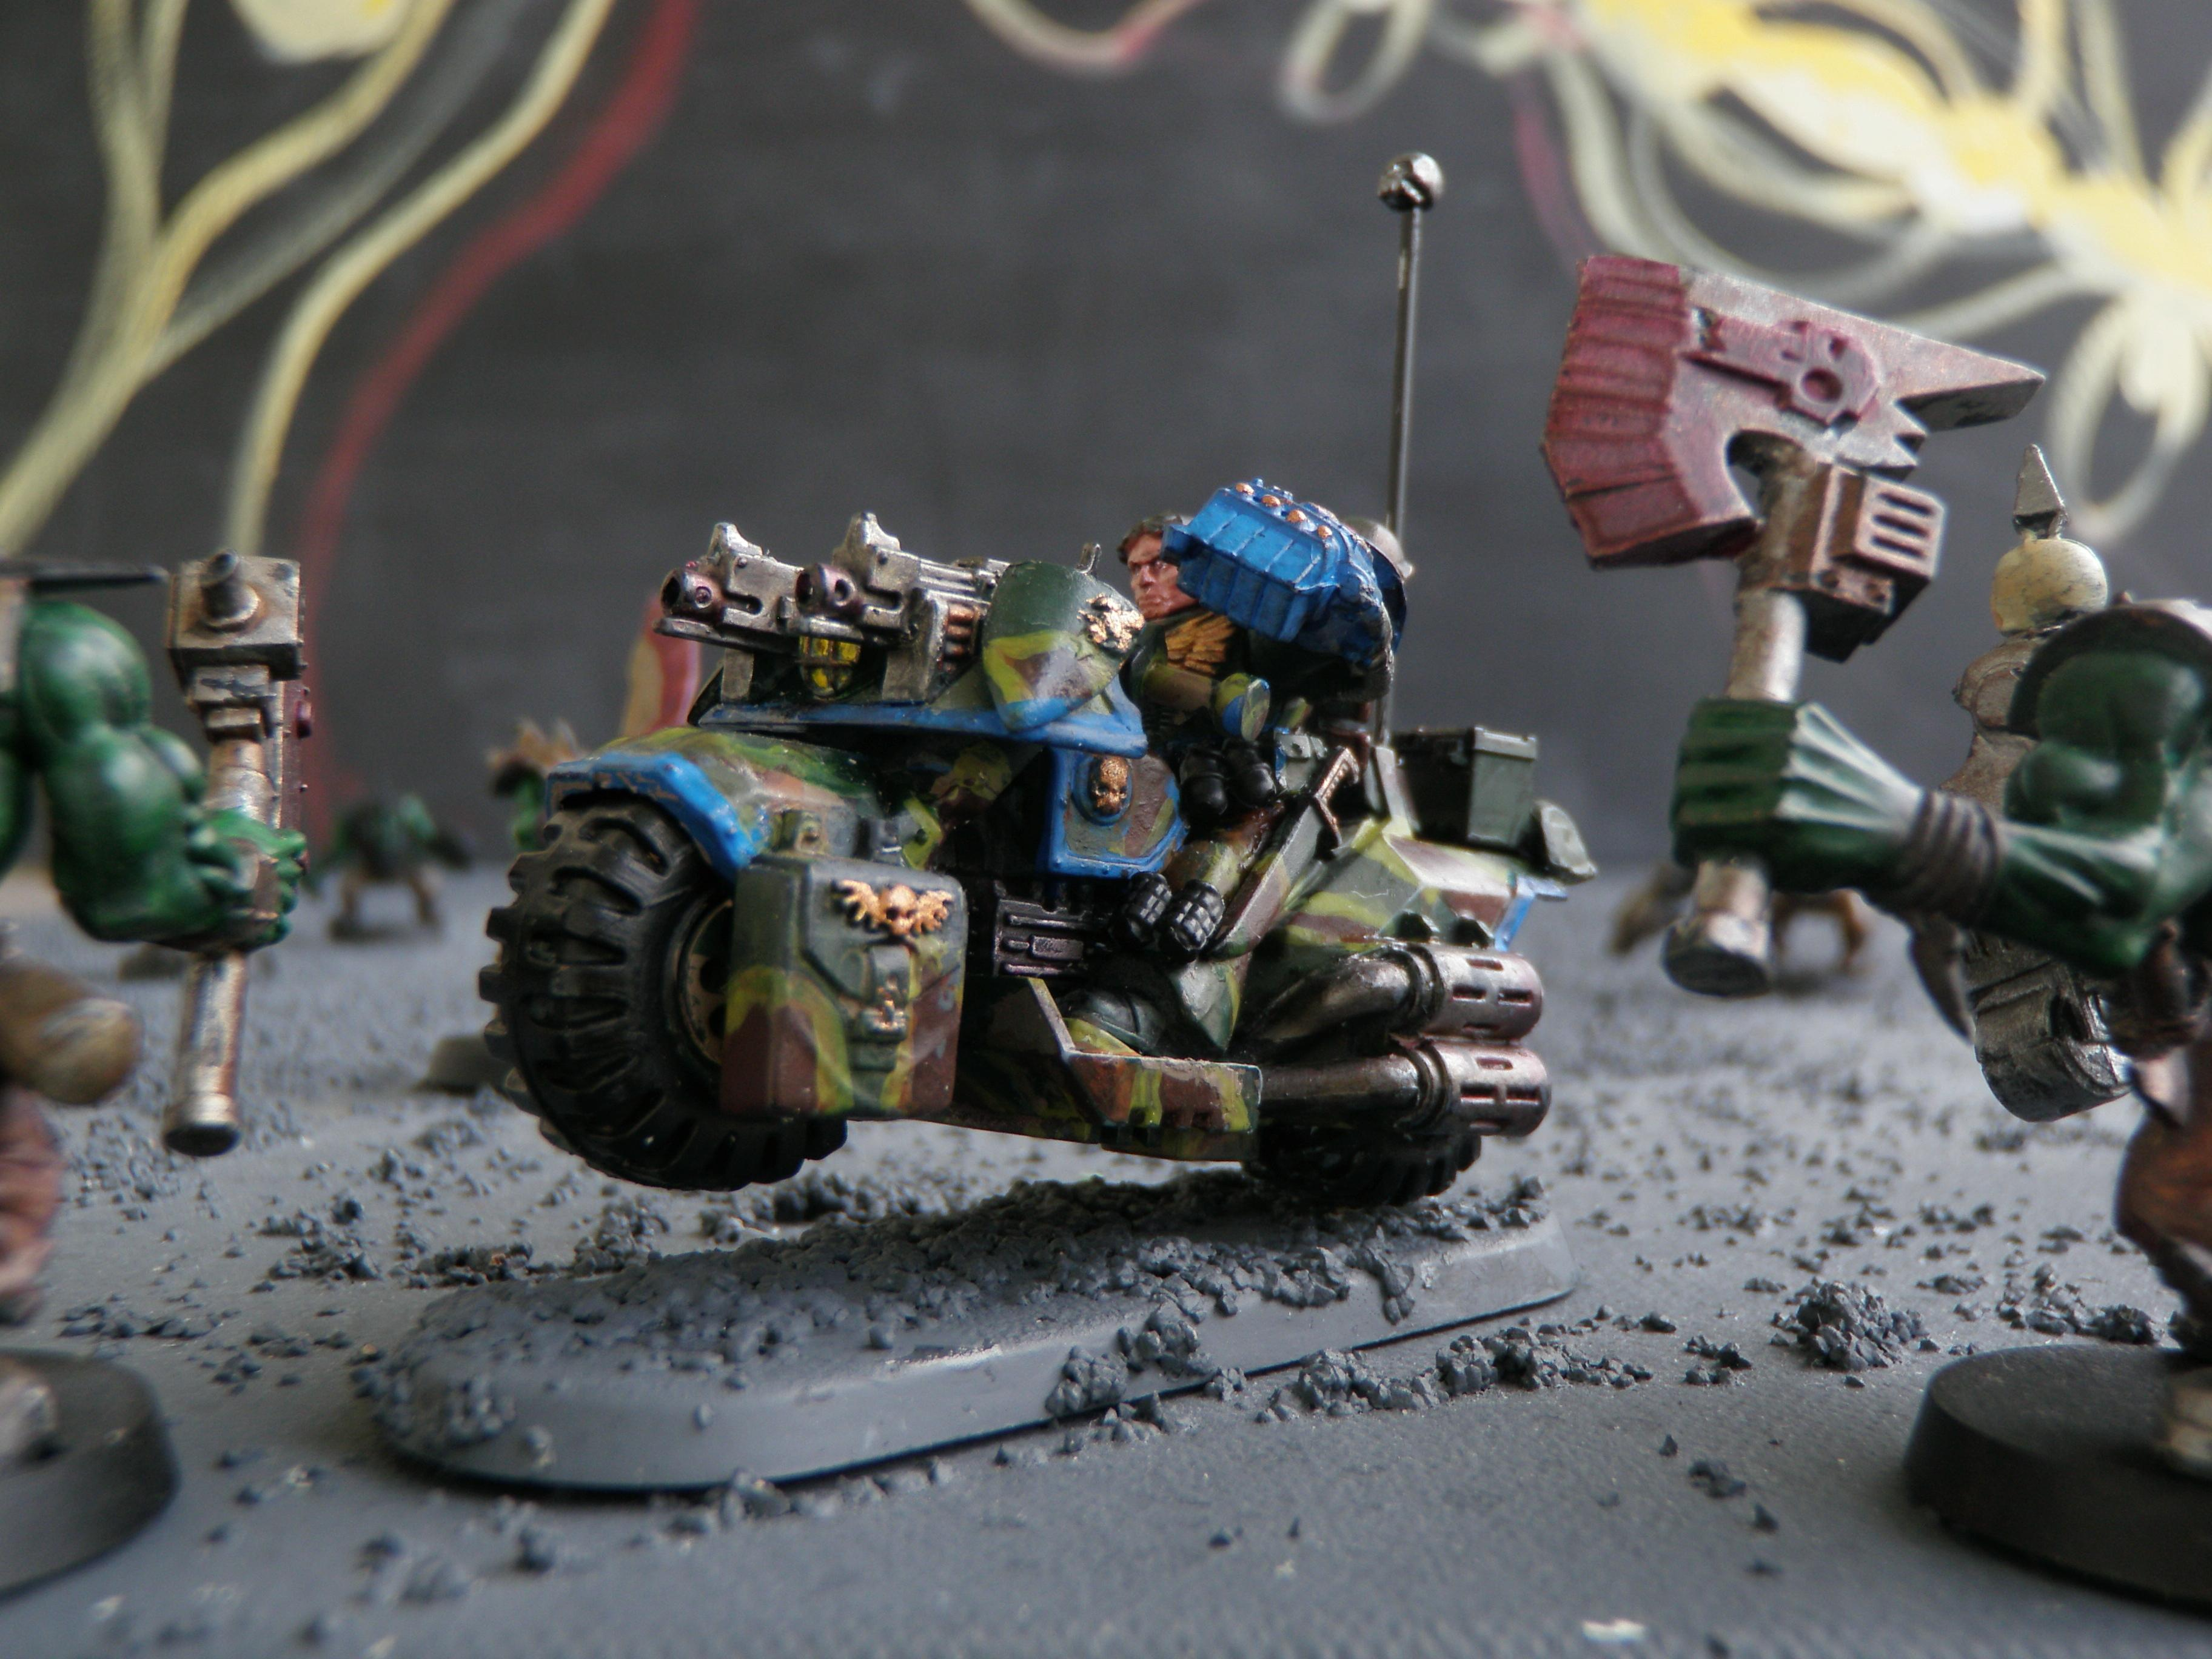 Bike, Camouflage, Grenades, Power Fist, Sergeant, Space Marines